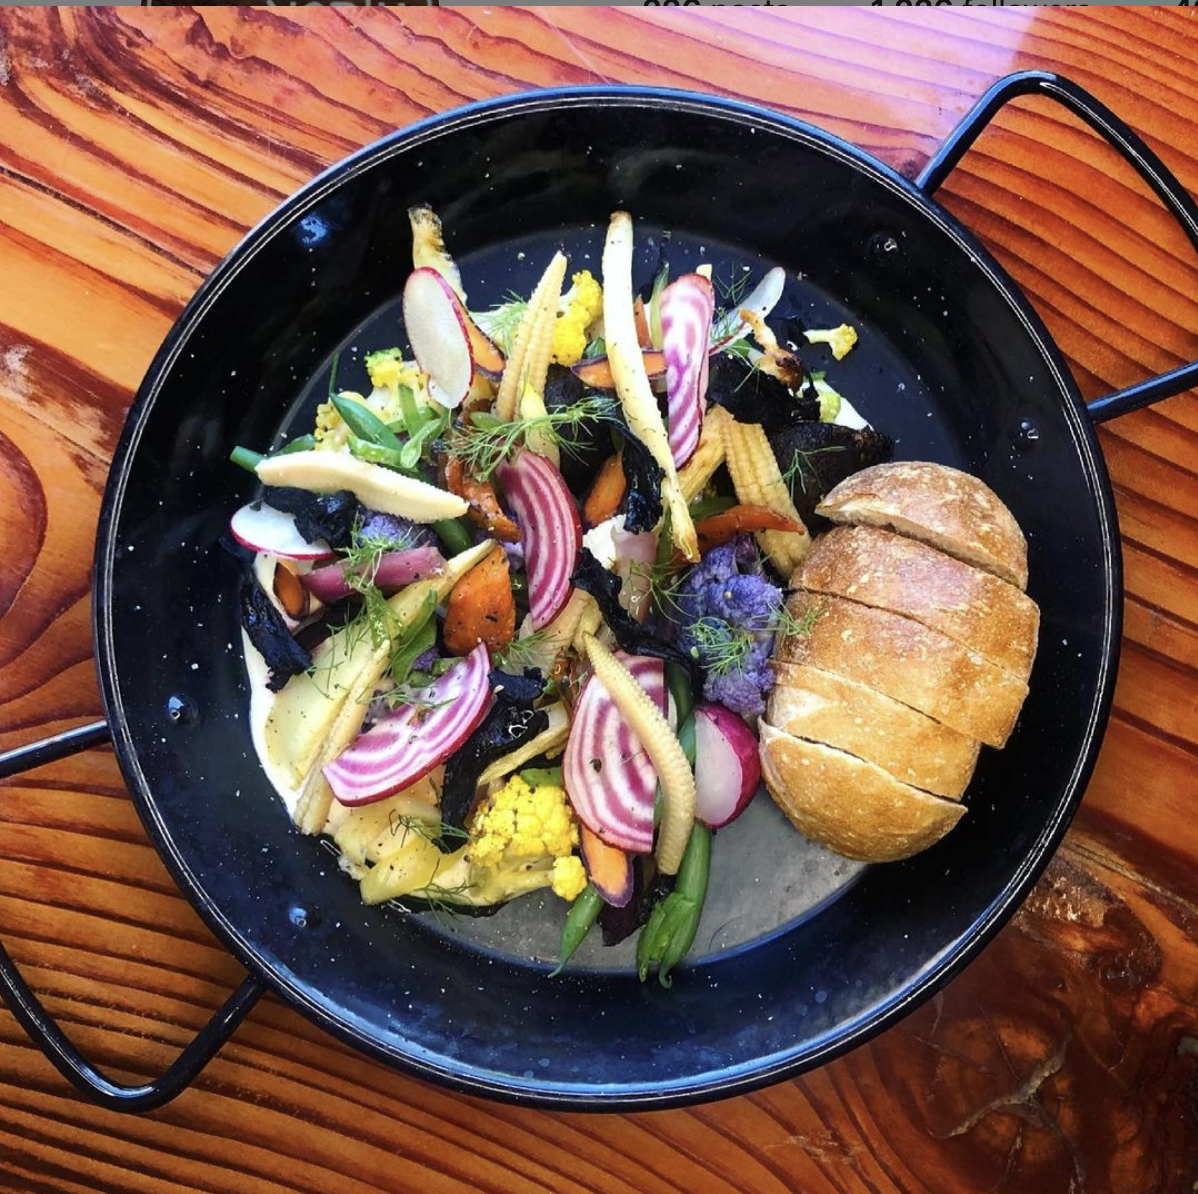 A black plate filled with candy-stripe beets, peas, carrots, and purple sprouting broccoli sits on a wooden table. The vegetables are held in place on a bed of white parsnip butter, with a few slices of bread next to the vegetables.